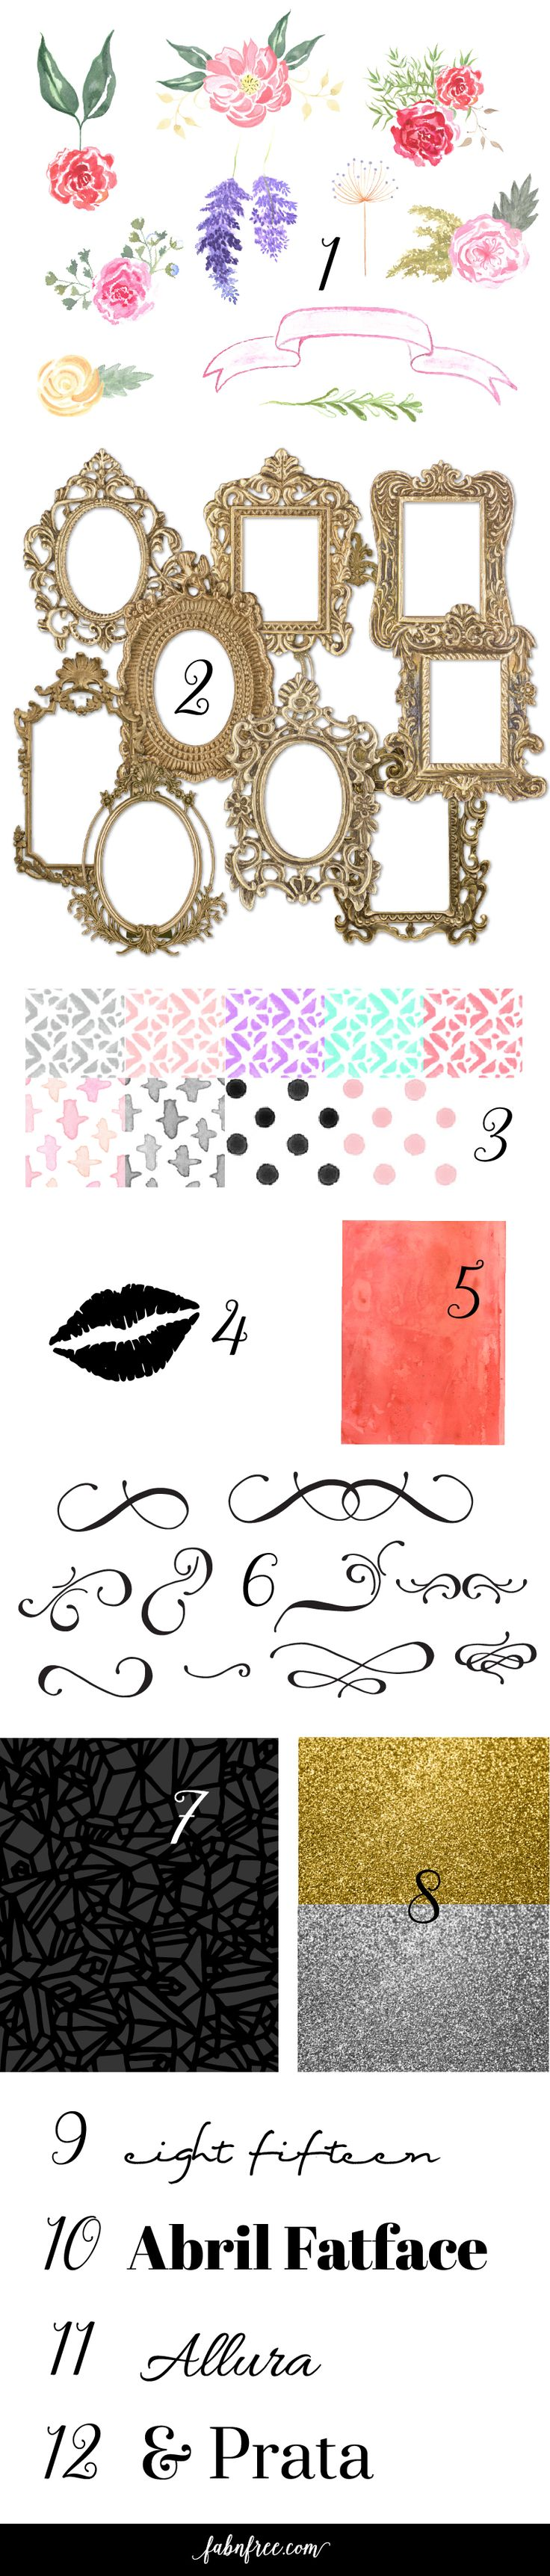 FREE!!! 81 Watercolor Florals, 10 amazing gold frames, 4 fonts, 13 backgrounds, lip clip art and 15 clip art swooshes!!!